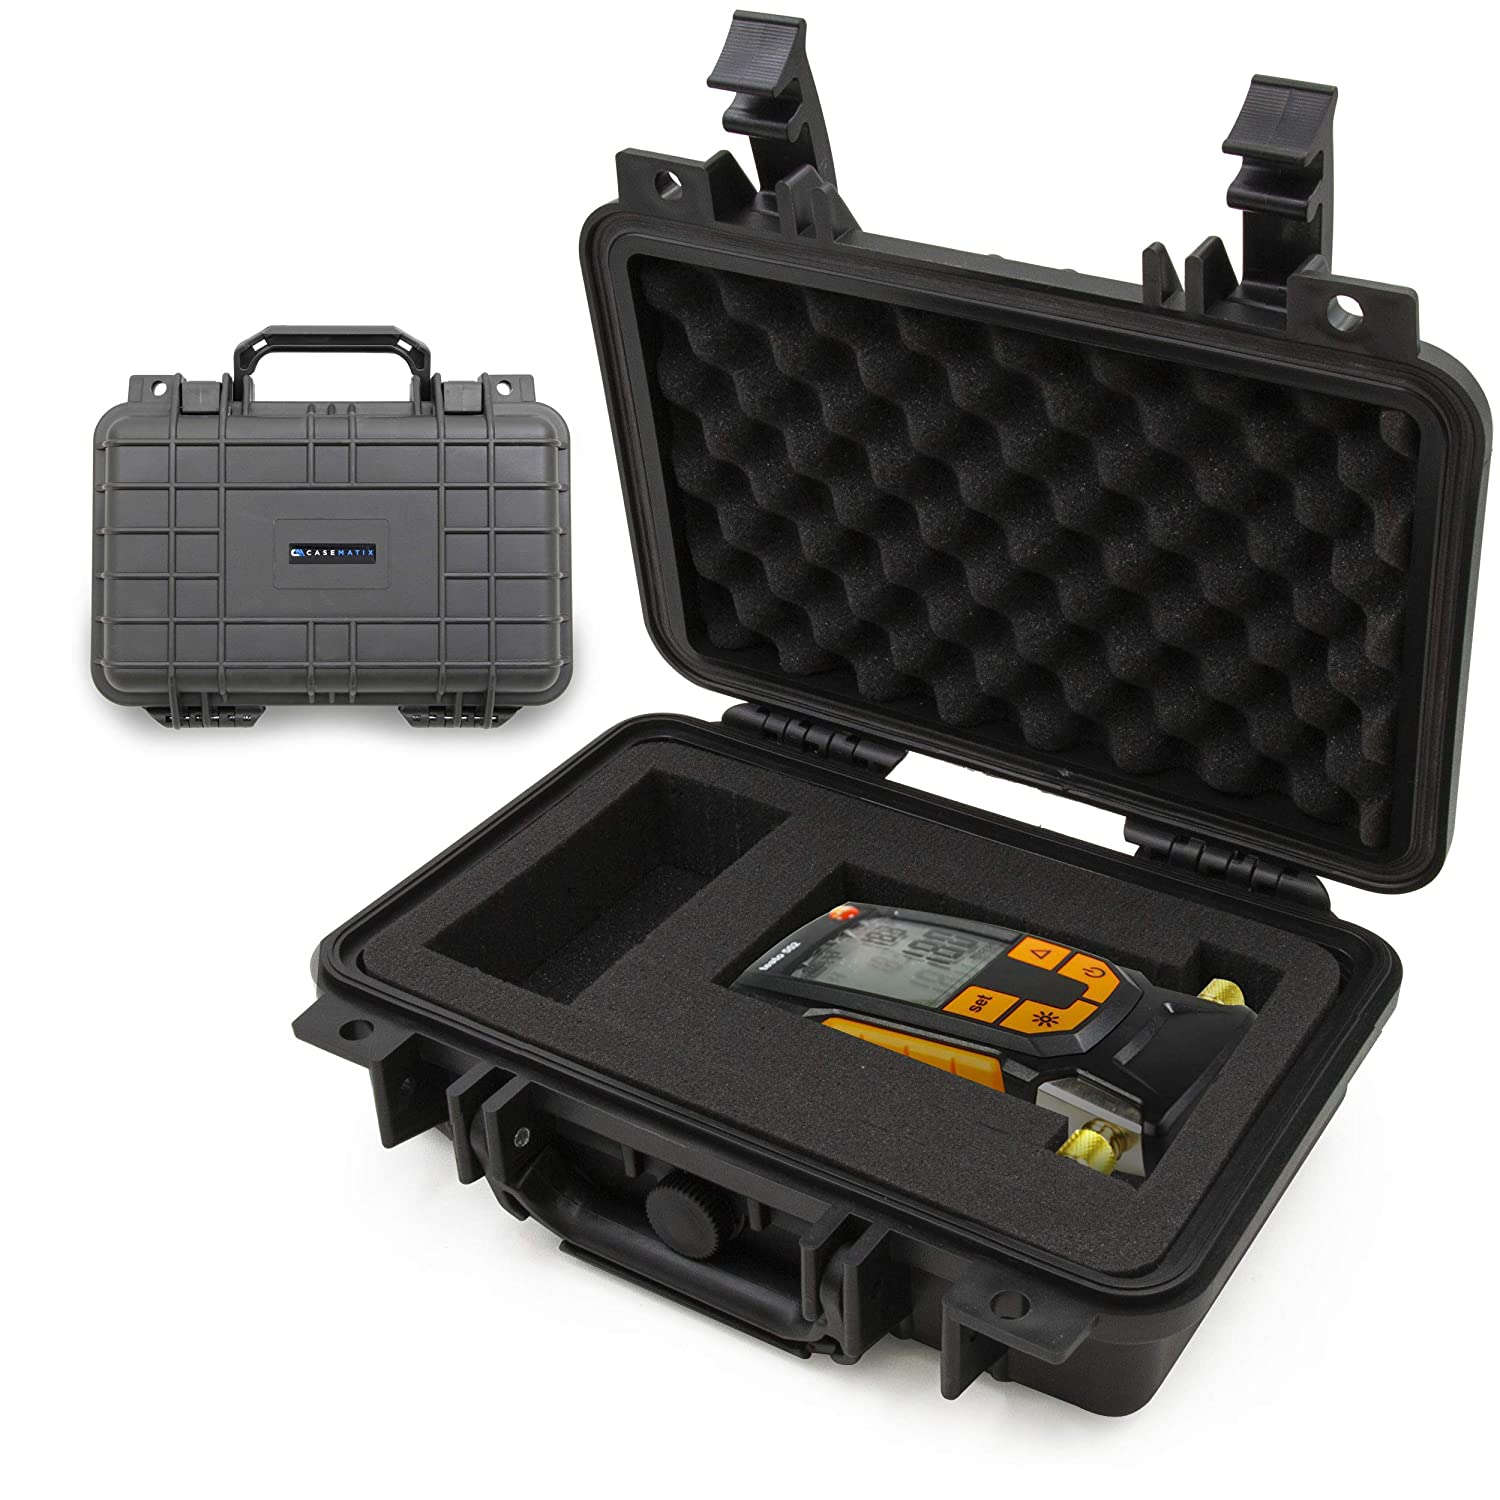 CASEMATIX Travel Case Compatible with Testo 552 Digital Vacuum Gauge - Hard Shell Waterproof Micron Gauge HVAC Carrying Case with Customizable Foam Interior, Folding Carry Handle and Accessory Storage